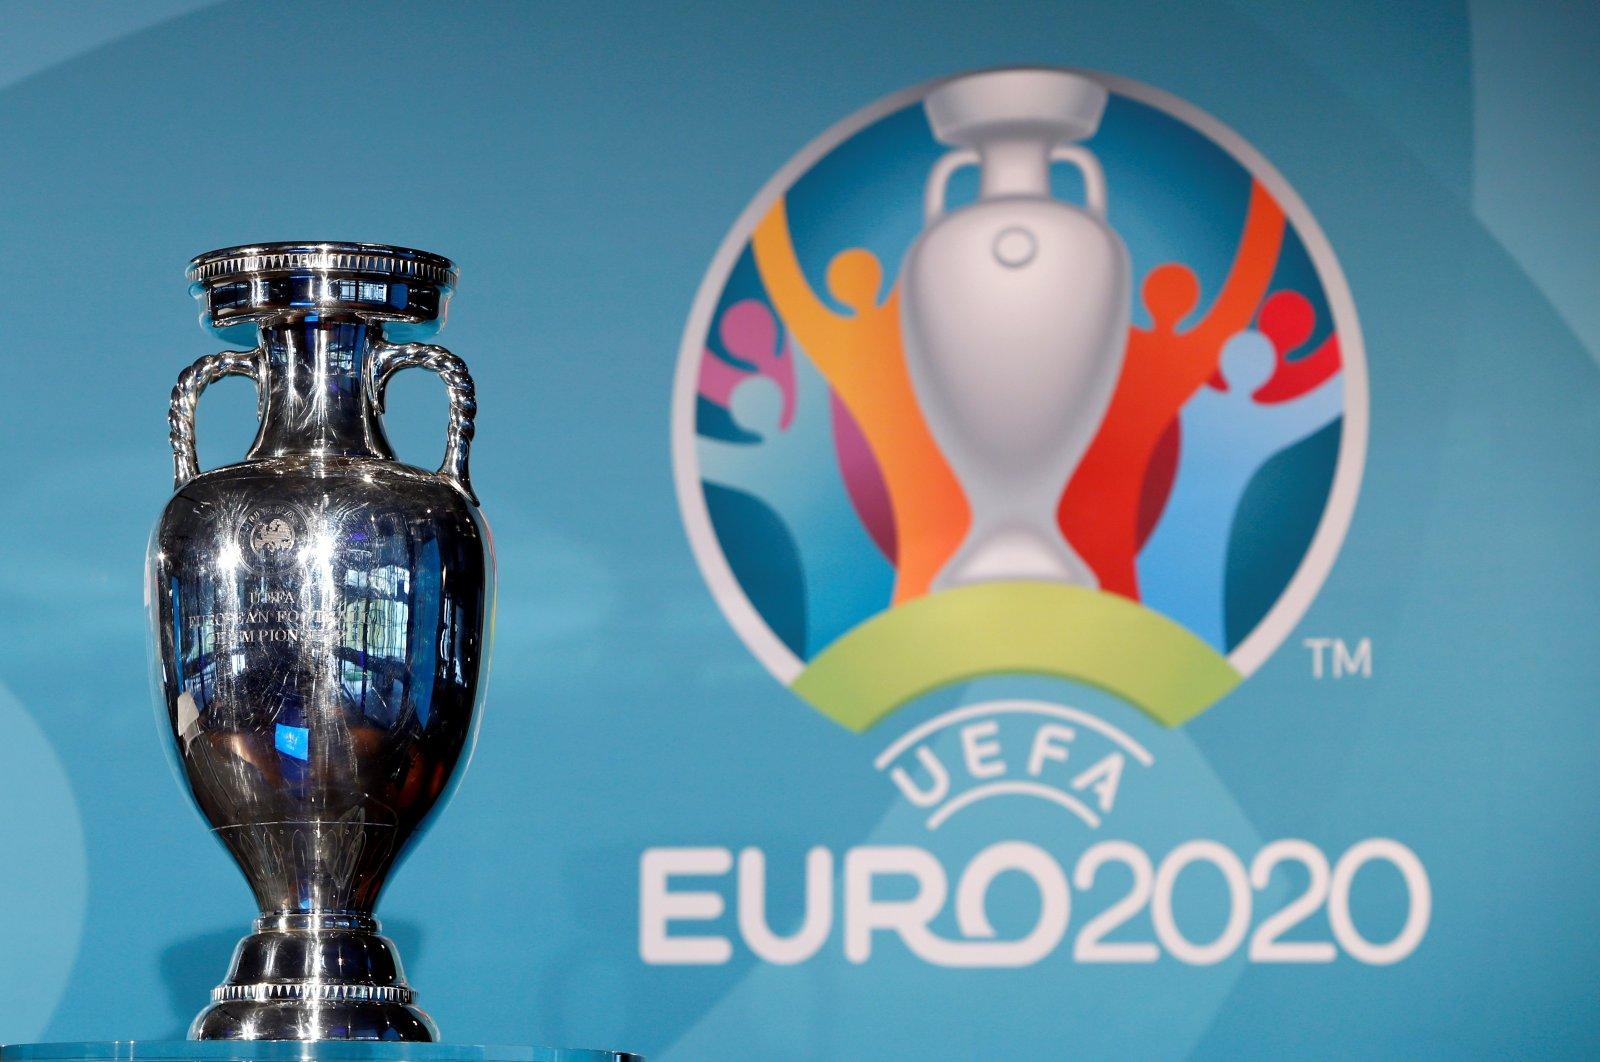 The Euro 2020 trophy on display during a press conference at Olympia Park for the championship's logo launch, Munich, Germany, Oct. 27, 2016. (Reuters Photo)